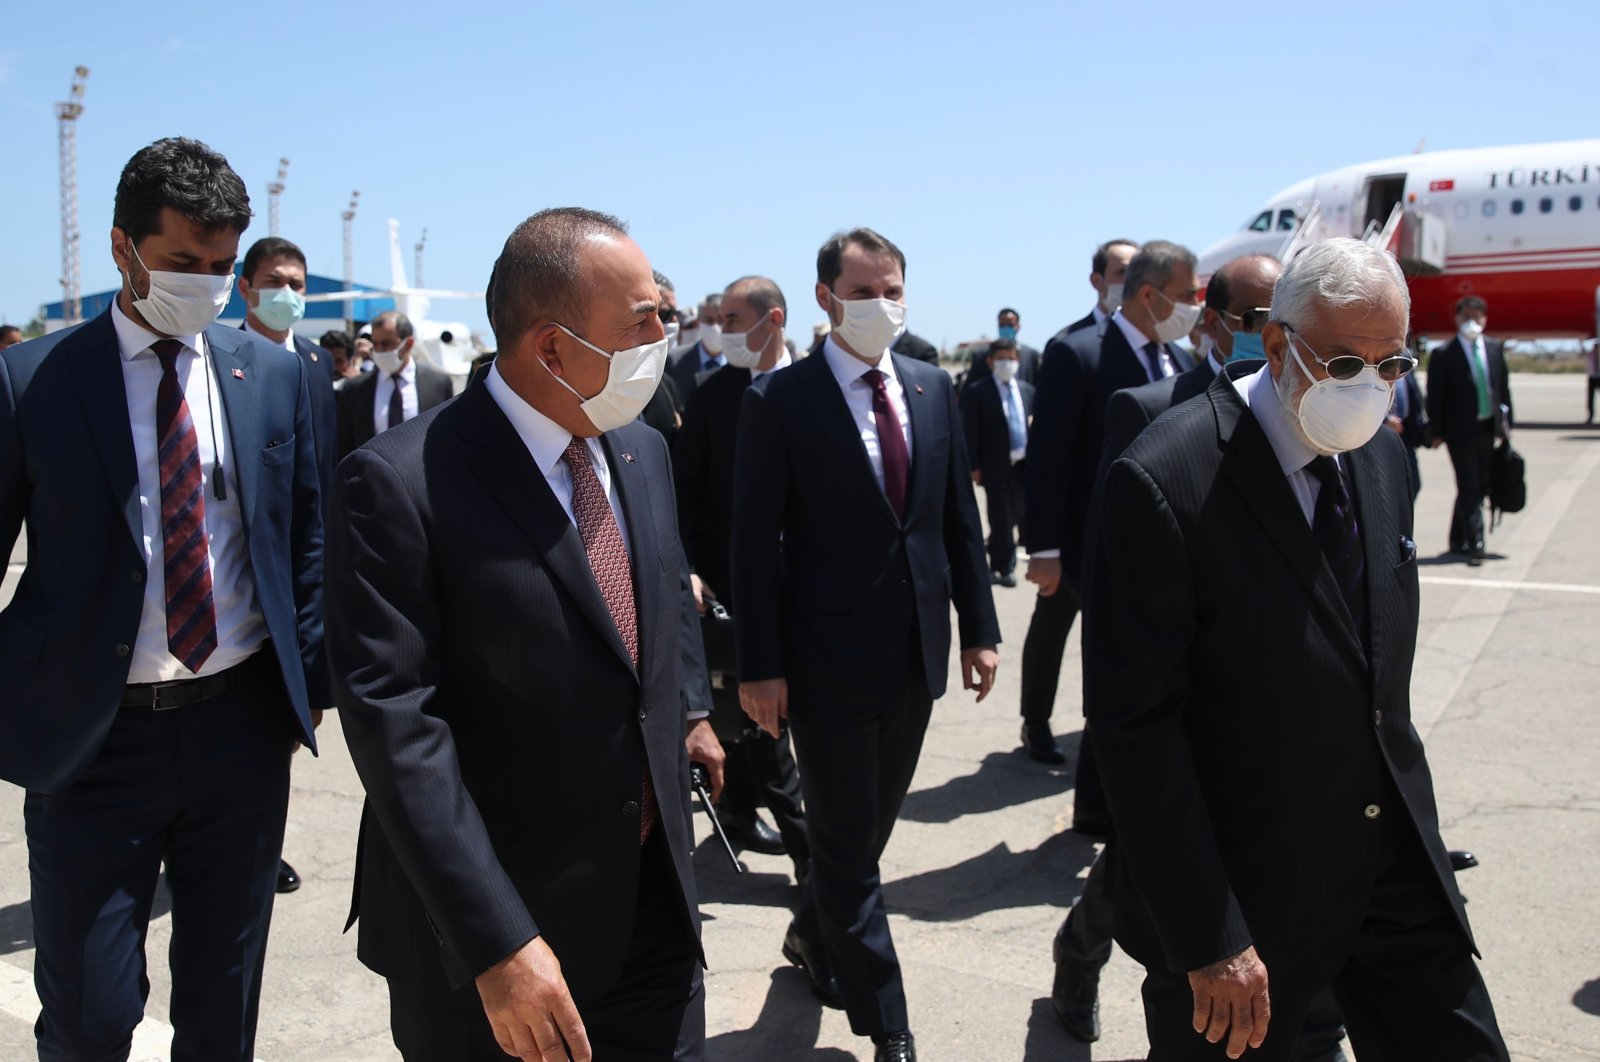 Turkish delegation is welcomed by Libyan counterparts upon their arrival for an official visit in Tripoli to discuss the Libya crisis and bilateral relations, June 17, 2020. (AFP Photo)